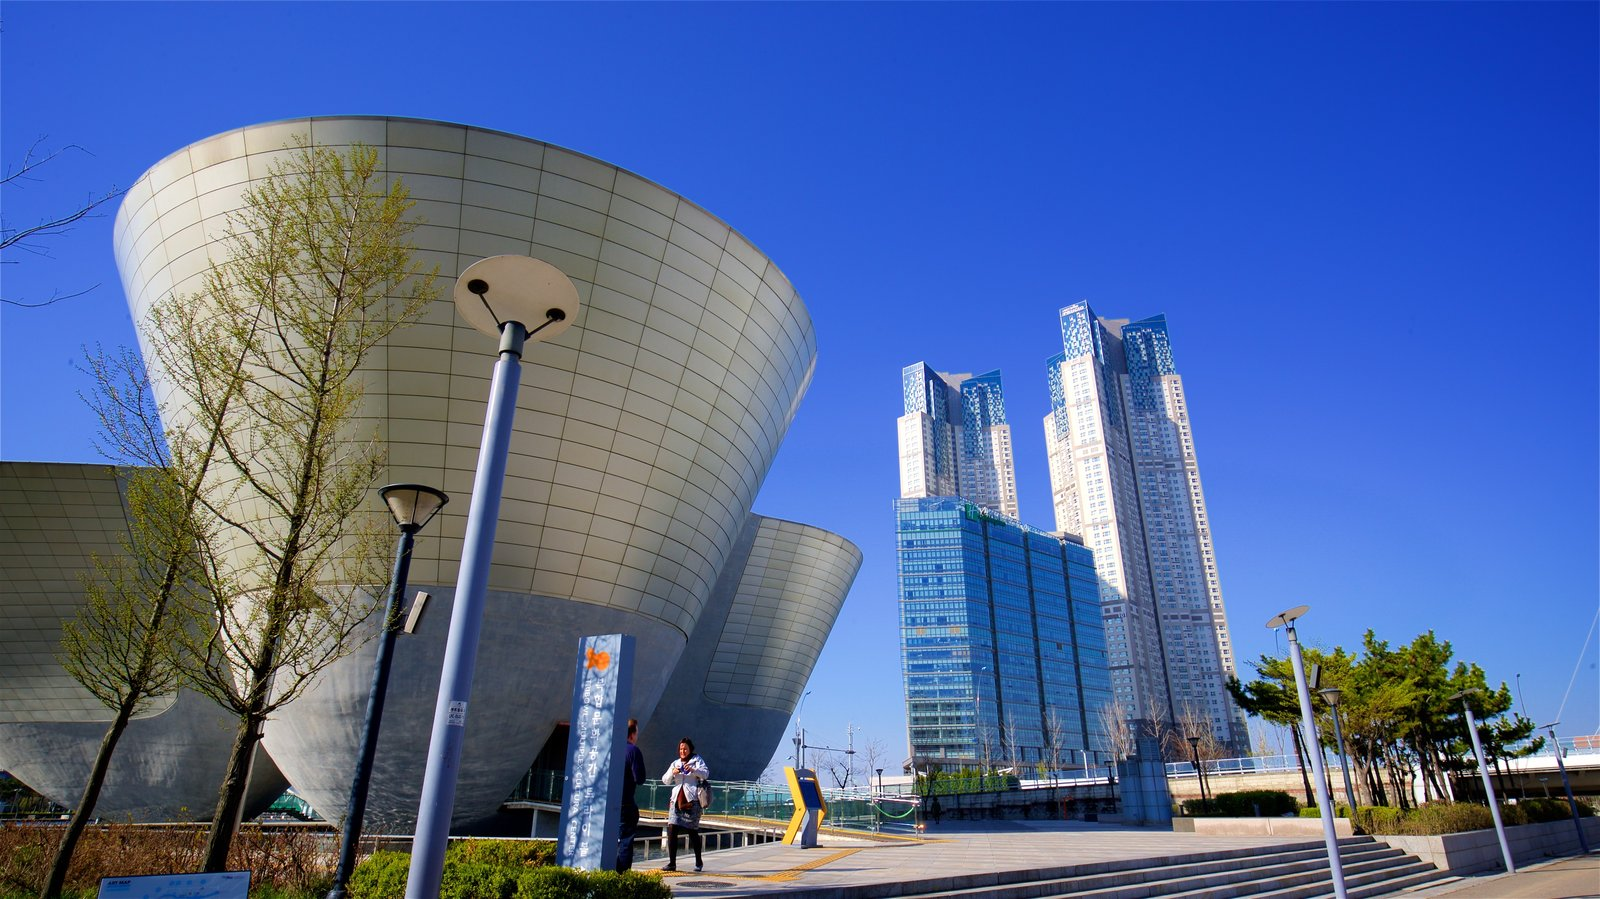 Incheon showing a garden, a skyscraper and modern architecture